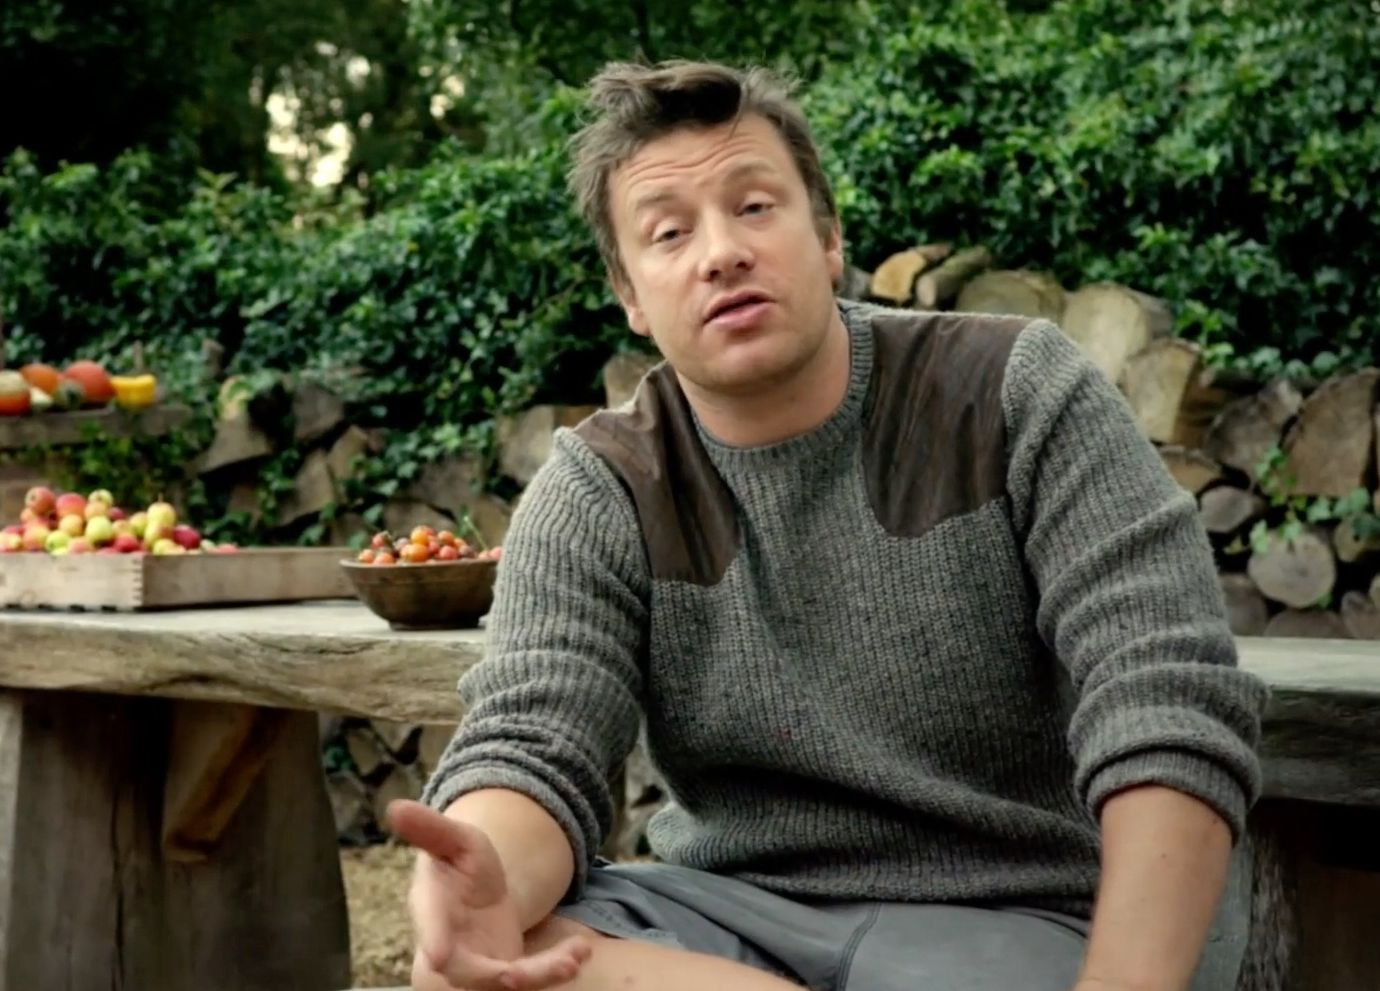 Jamie Oliver, Zoe Wanamaker And Rankin Want To Help You Land Your Dream